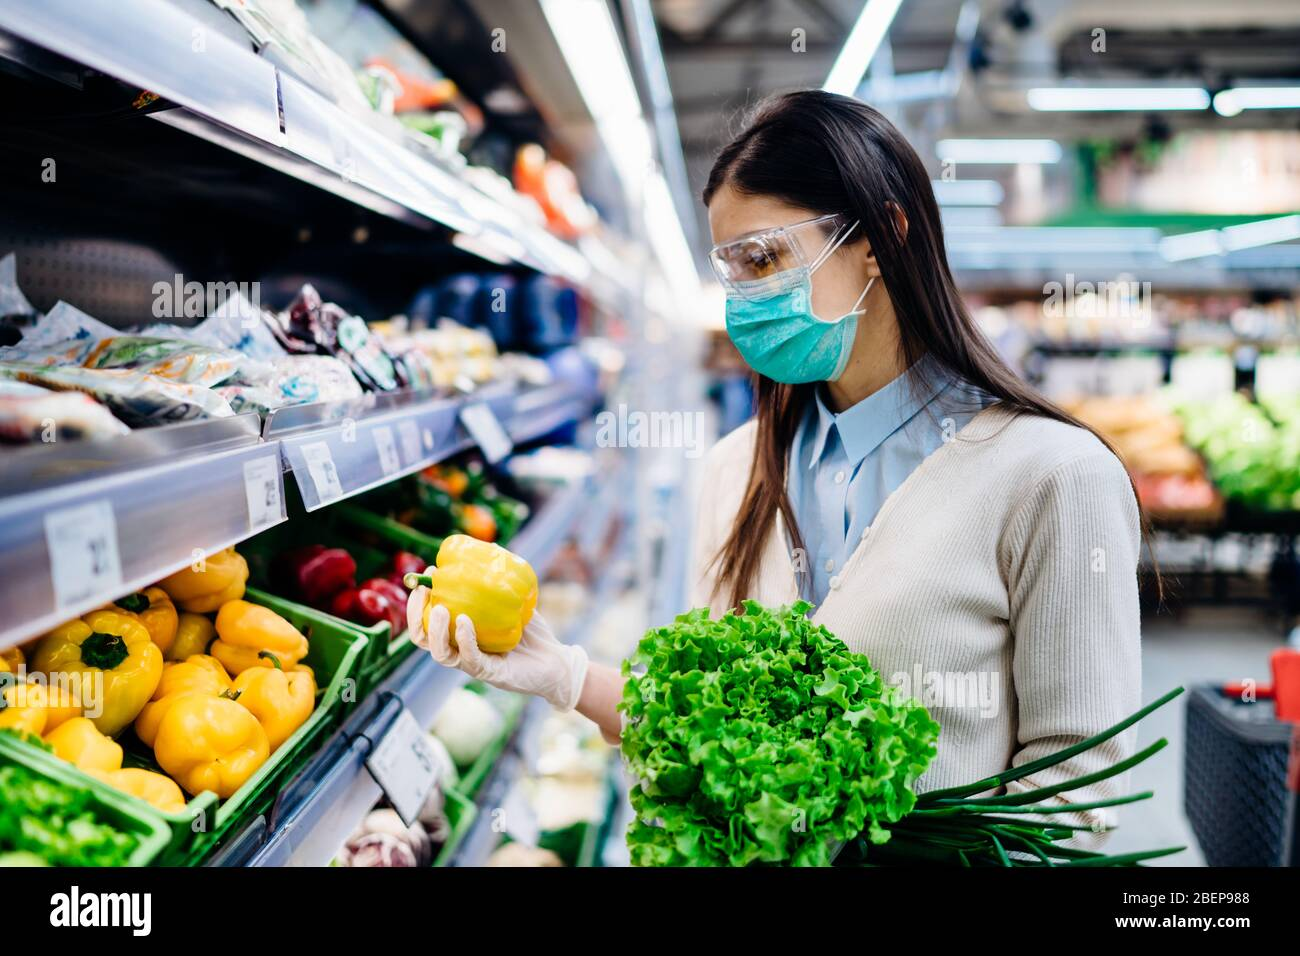 Woman with hygienic mask buying in supermarket grocery store for fresh greens,shopping during the pandemic.Natural source of vitamins and minerals.Pla Stock Photo